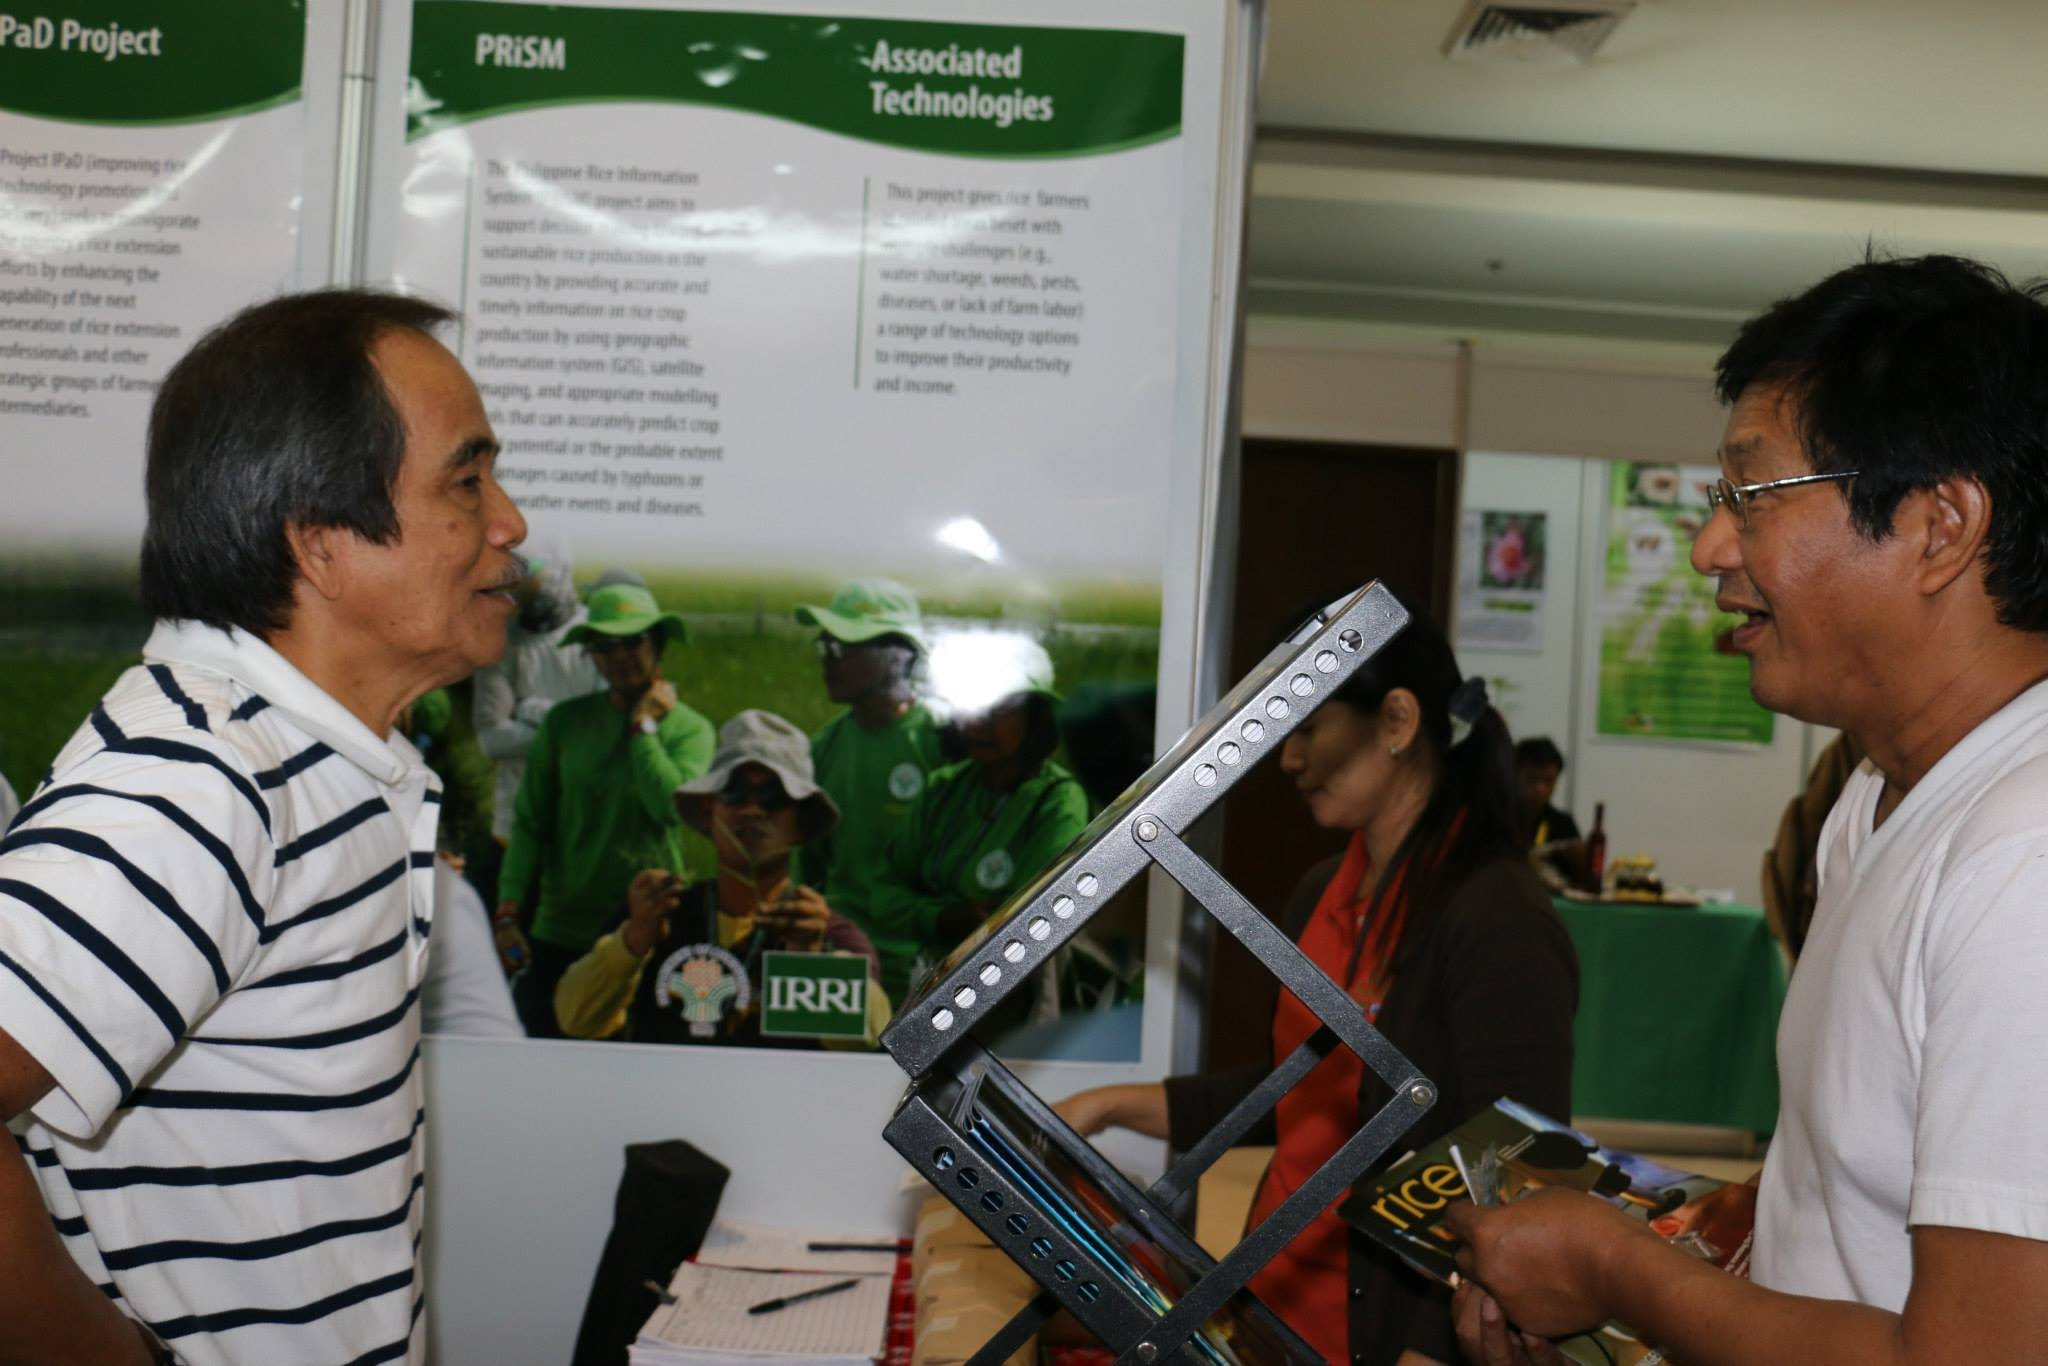 Dr. Manny Alejar talks to an exhibit visitor about IRRI's work in general.